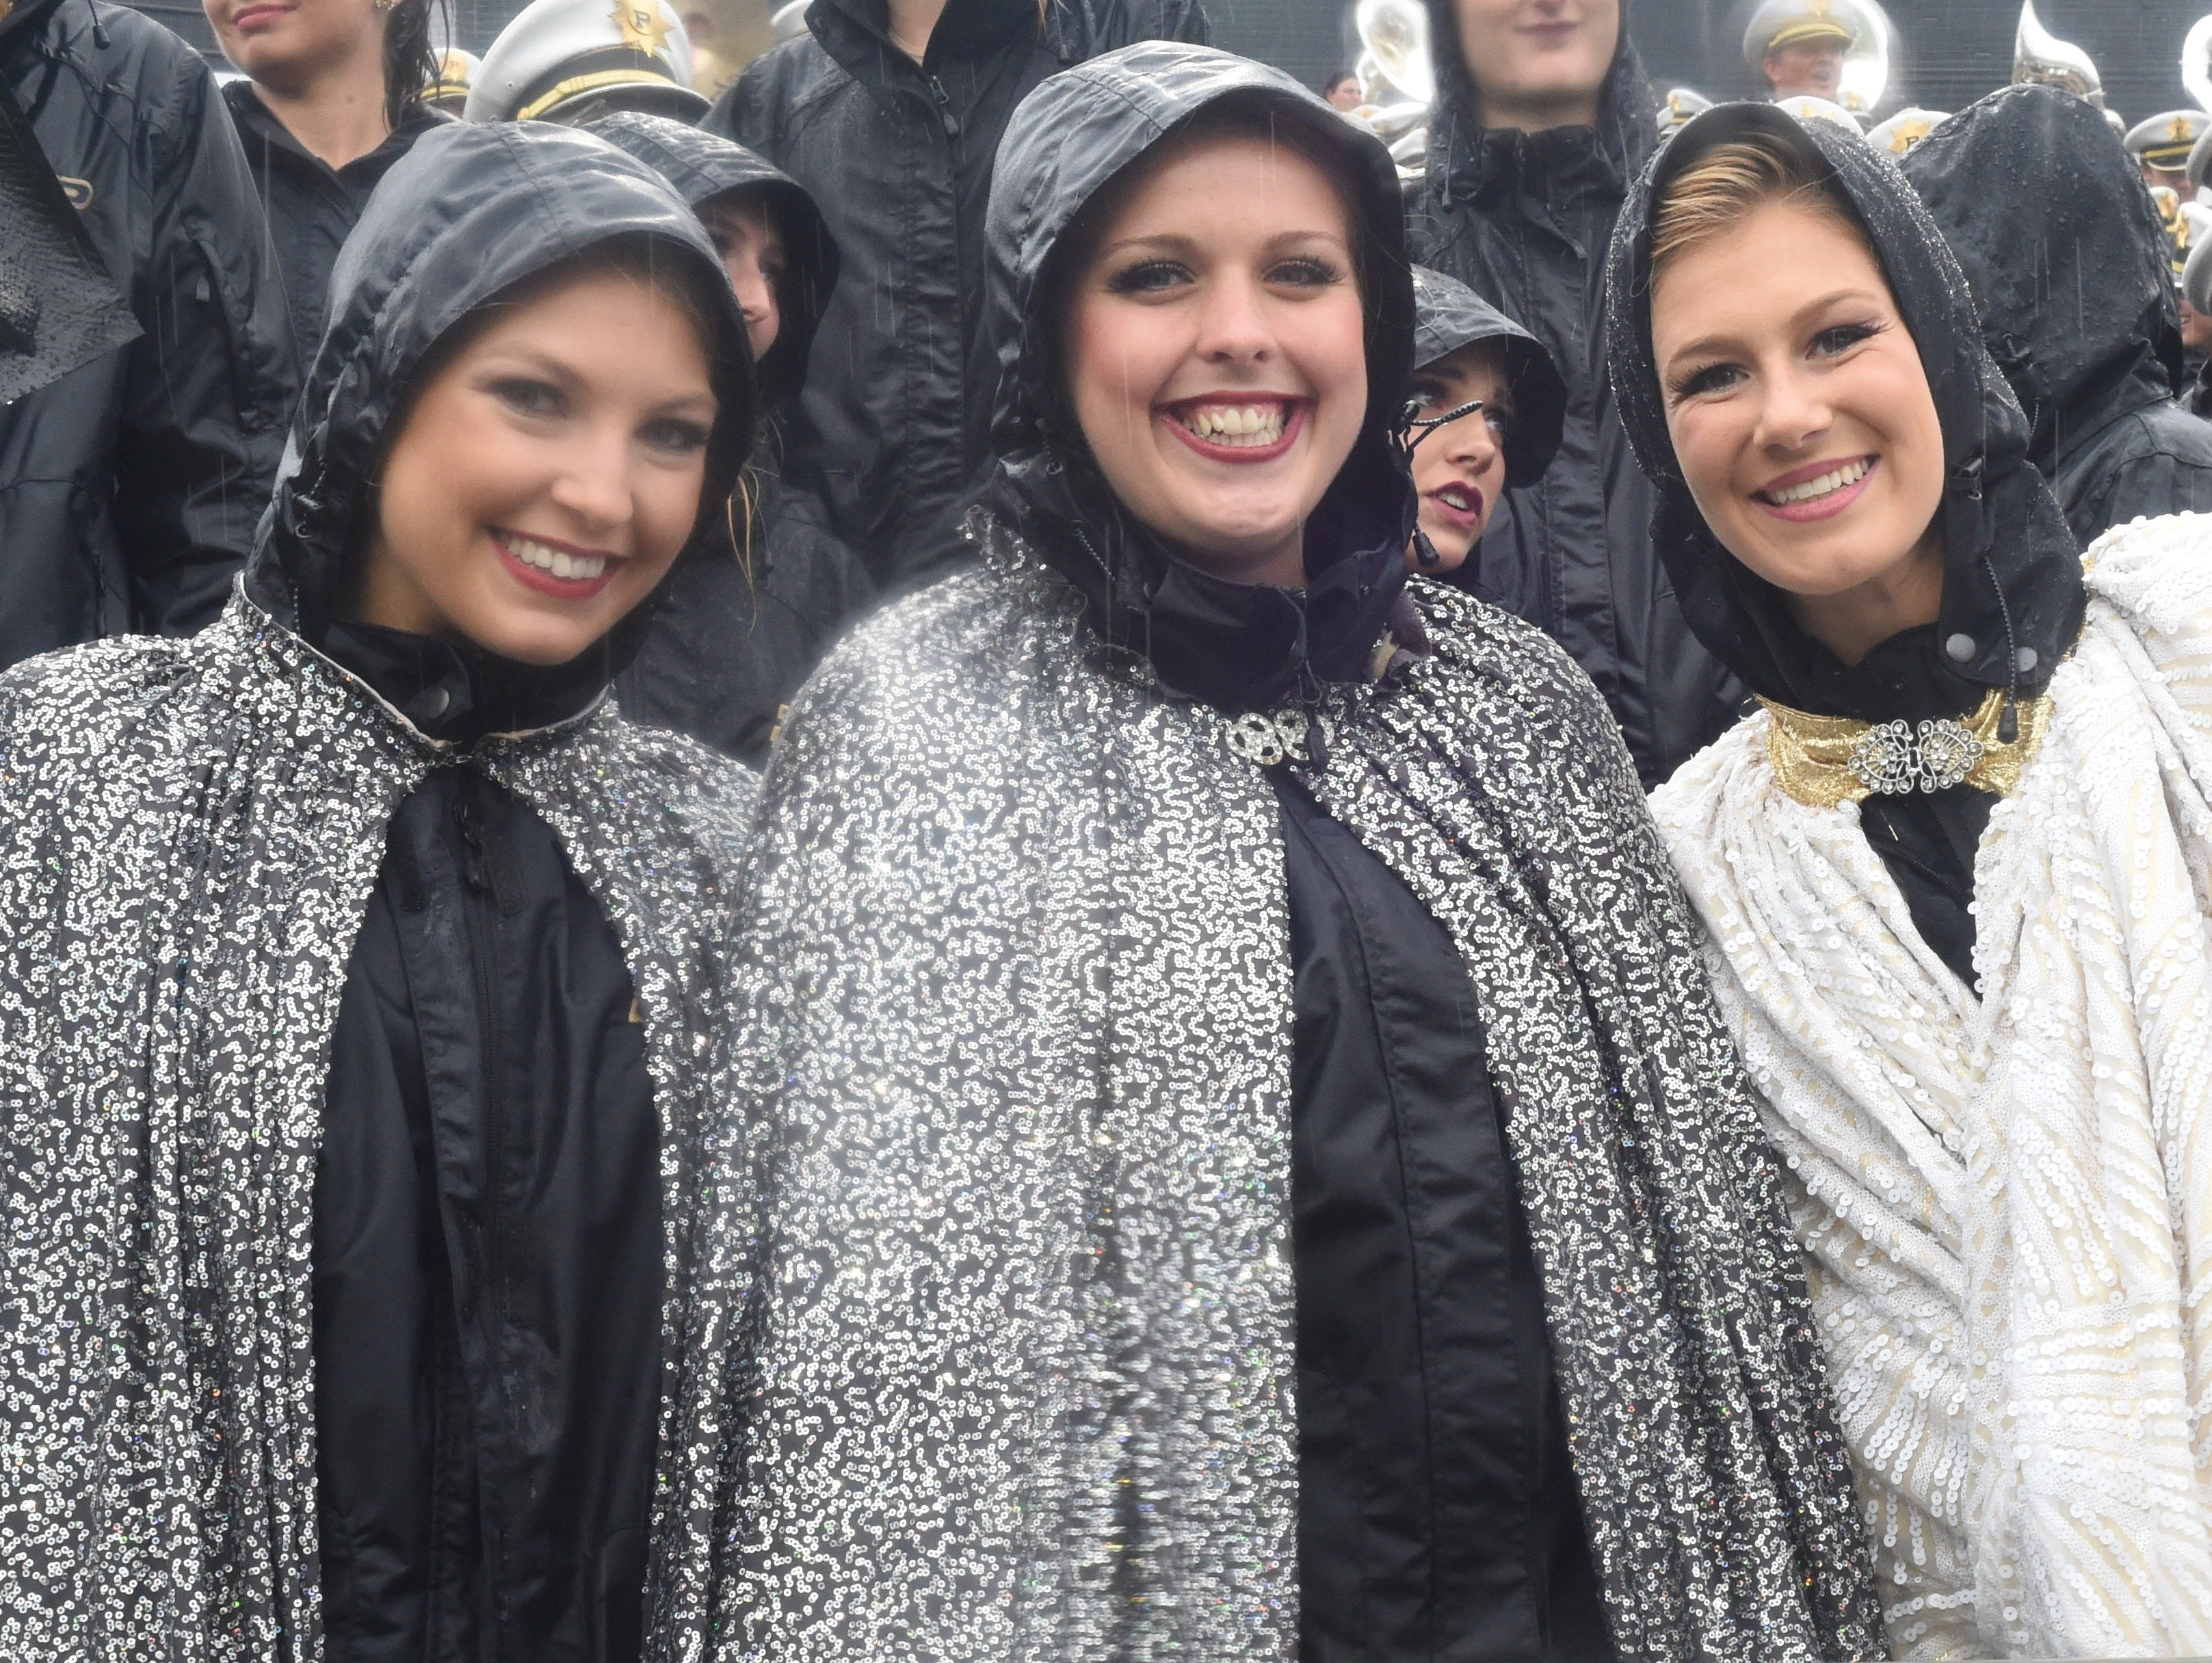 Boiler faithful braved the cold and the rain as Purdue welcomed Eastern Michigan to Ross-Ade Stadium.